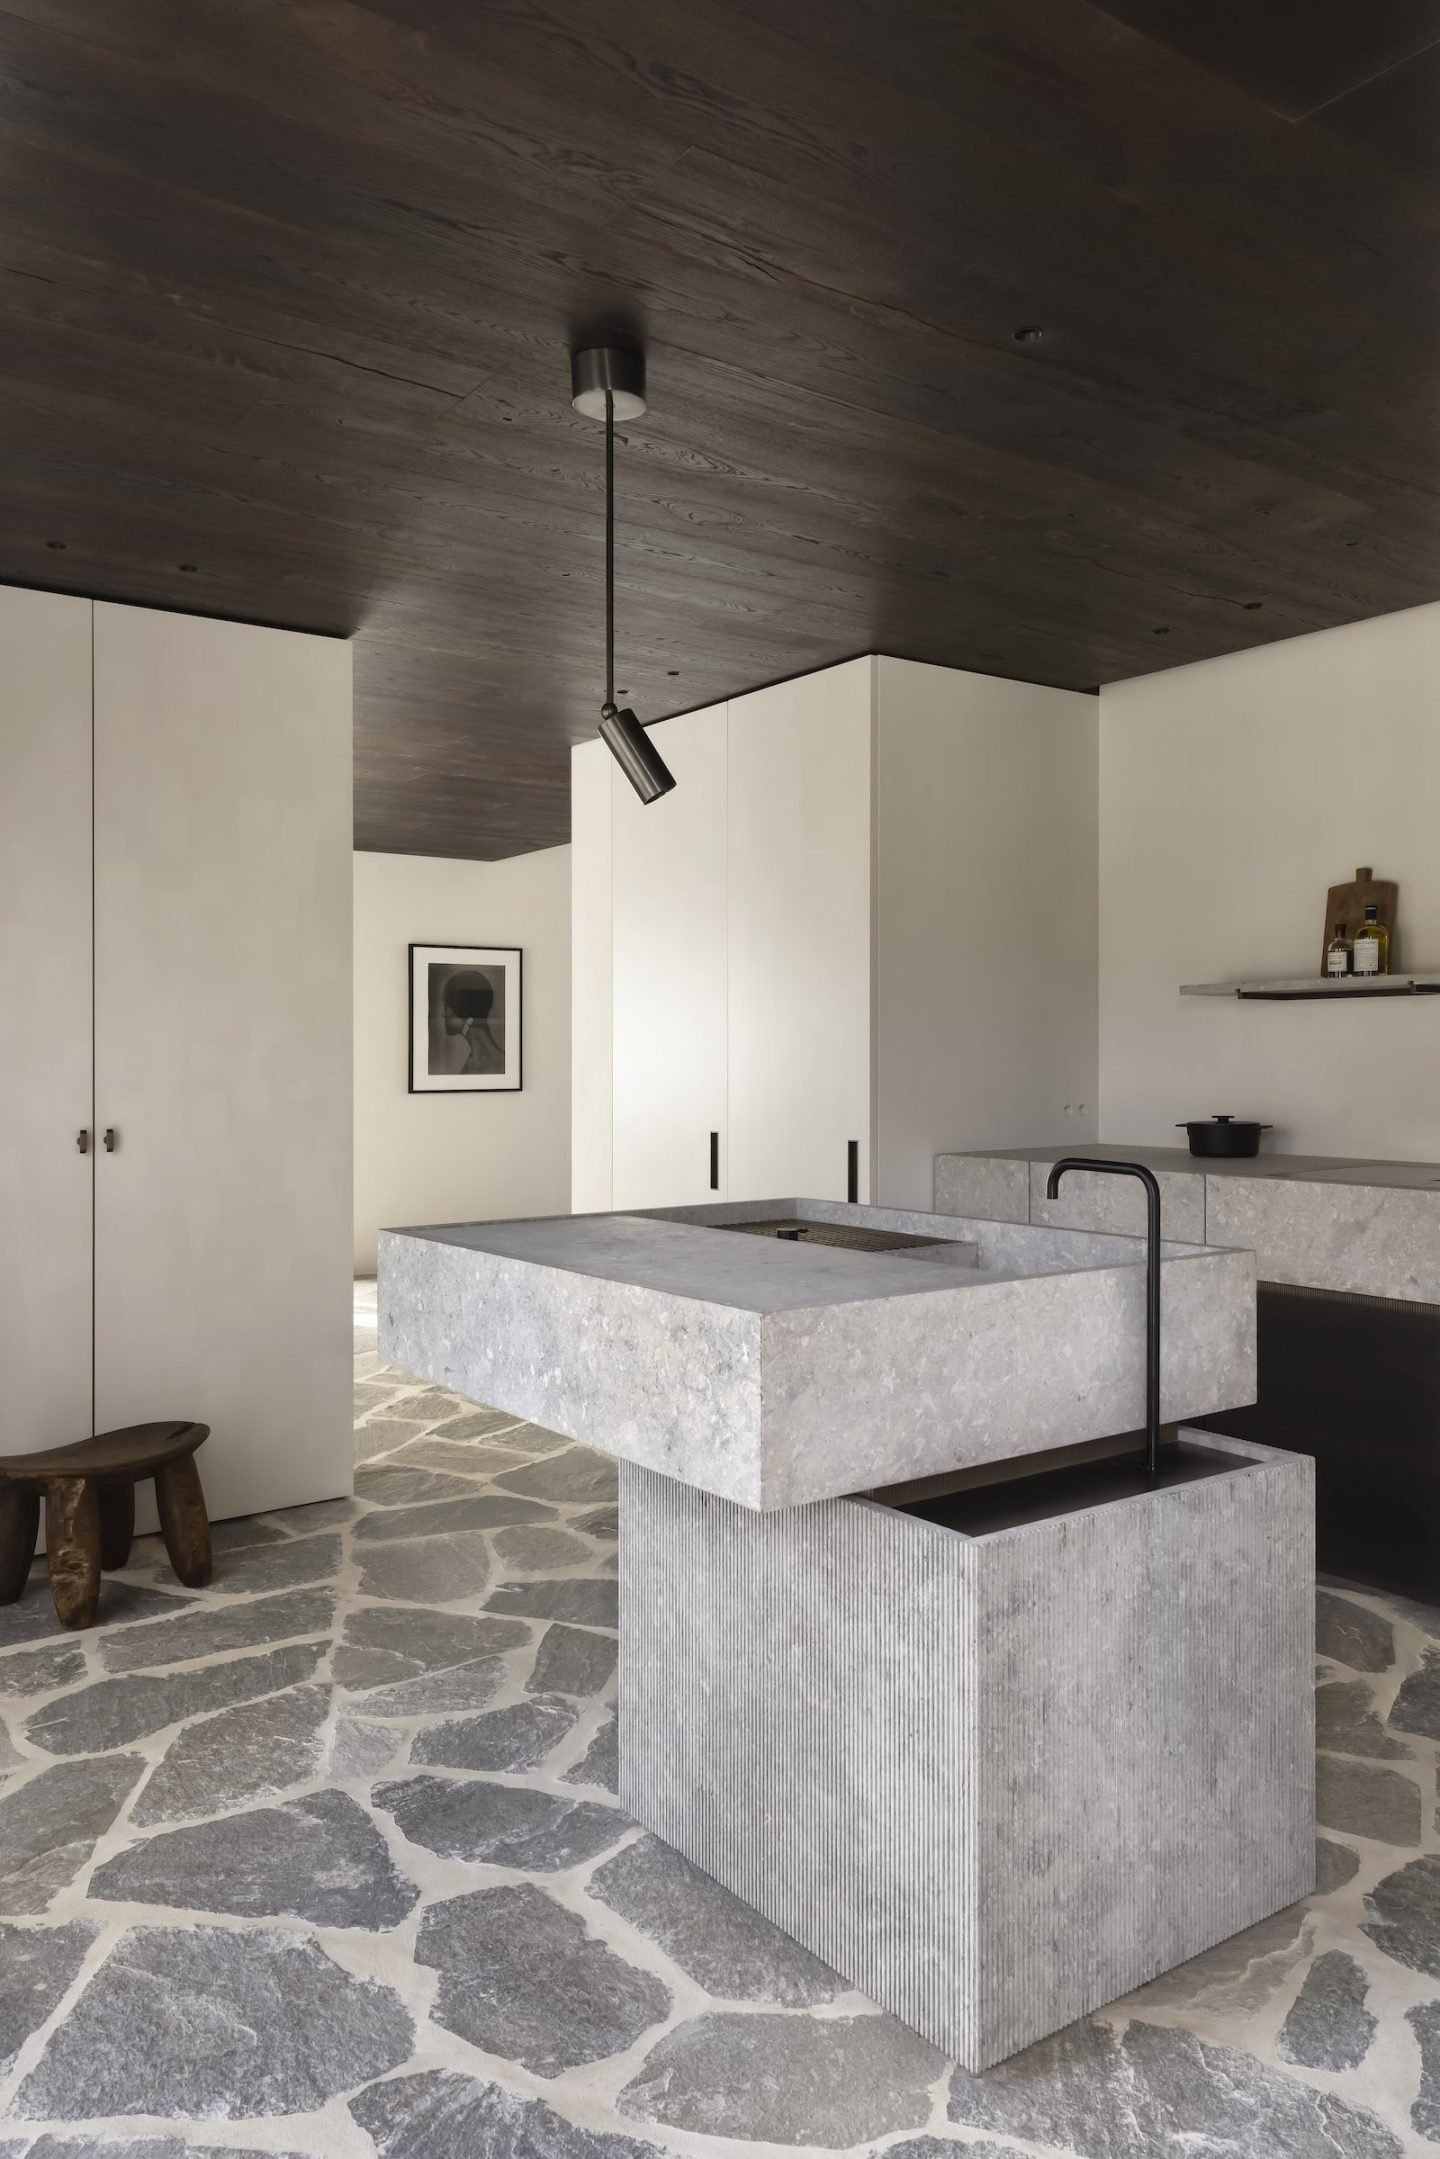 IGNANT-Architecture-Andy-Kerstens-MUD-Residence-02